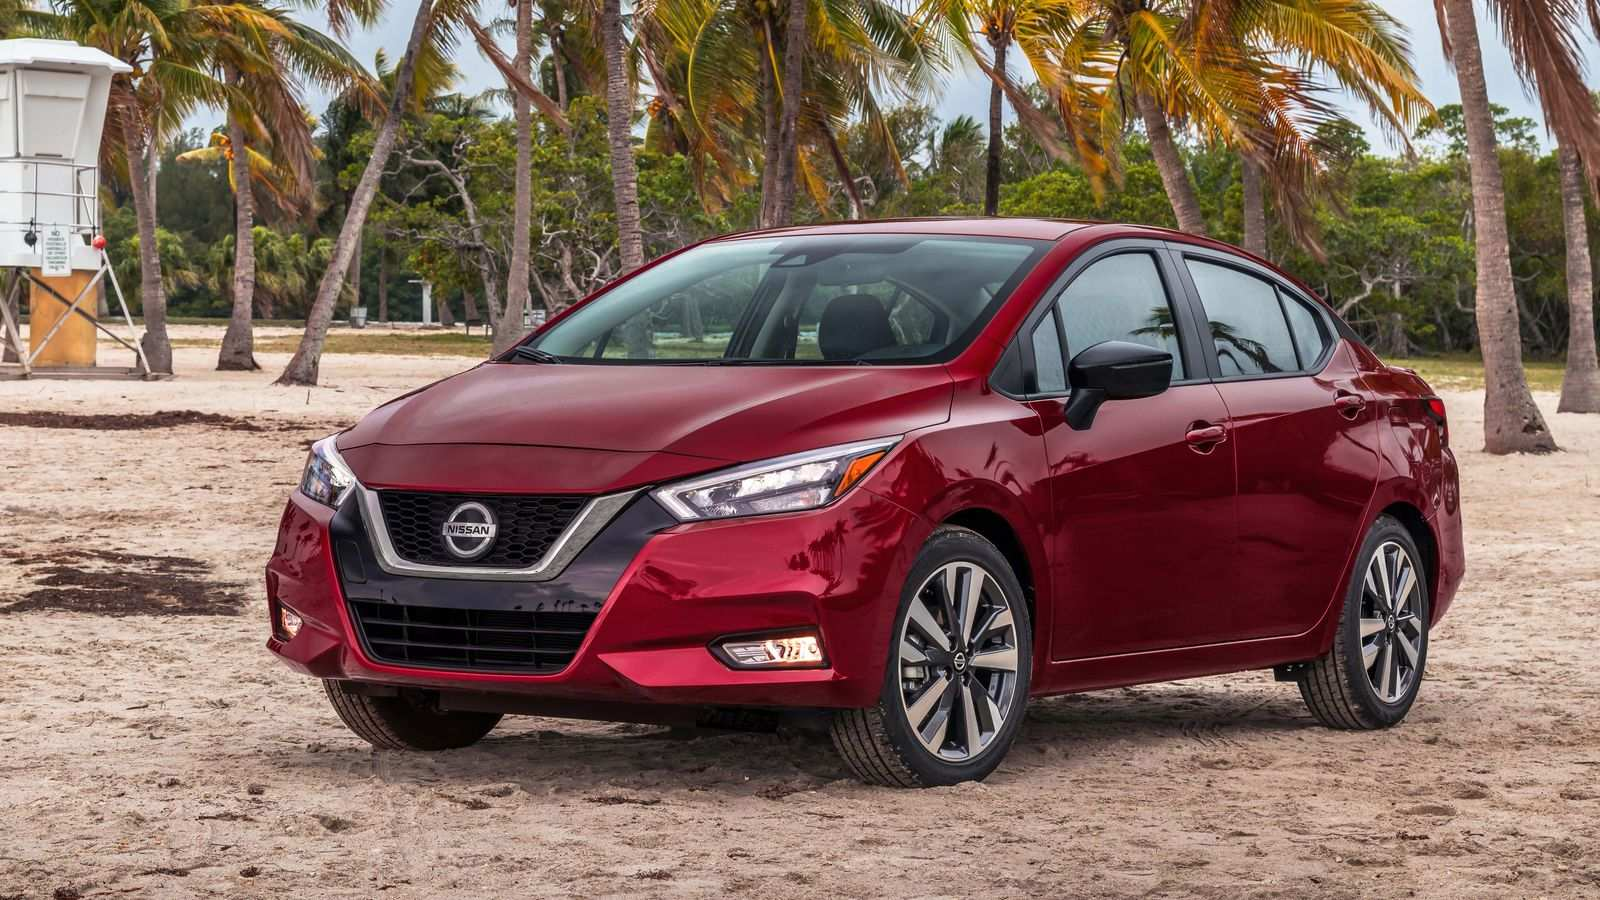 77 Gallery of Nissan Versa 2020 Prices for Nissan Versa 2020